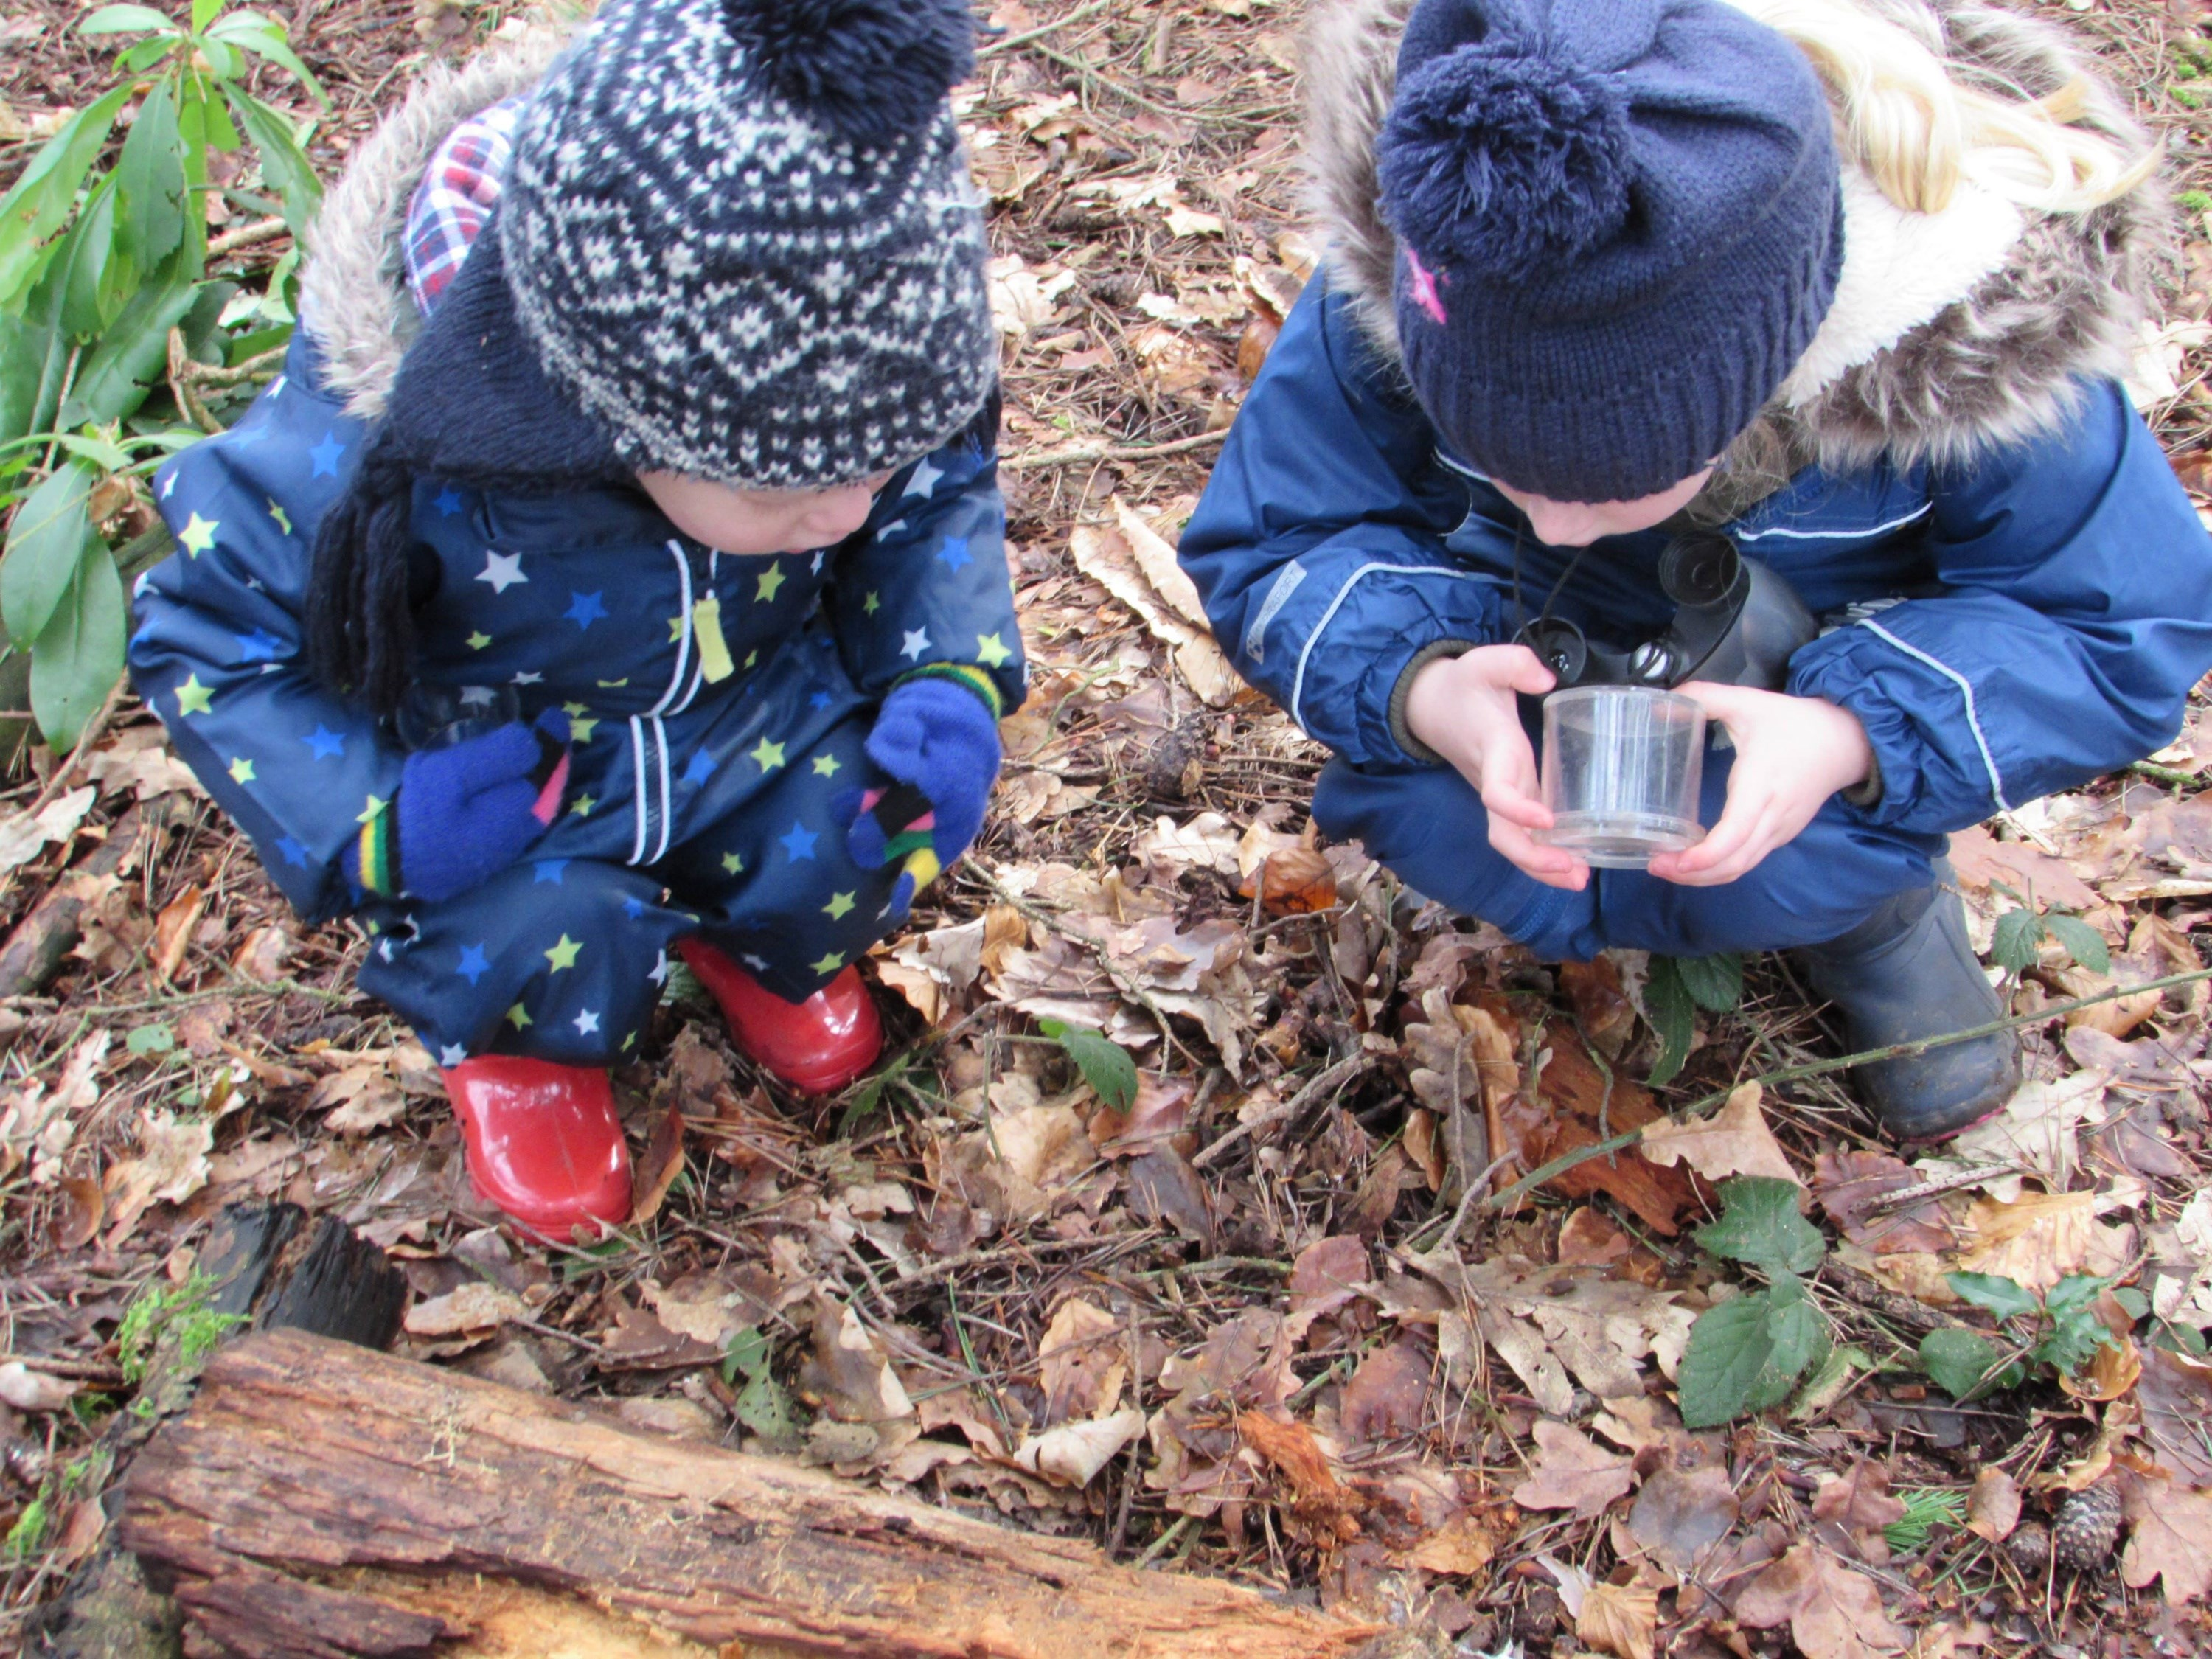 Explore and learn about the countryside this Easter